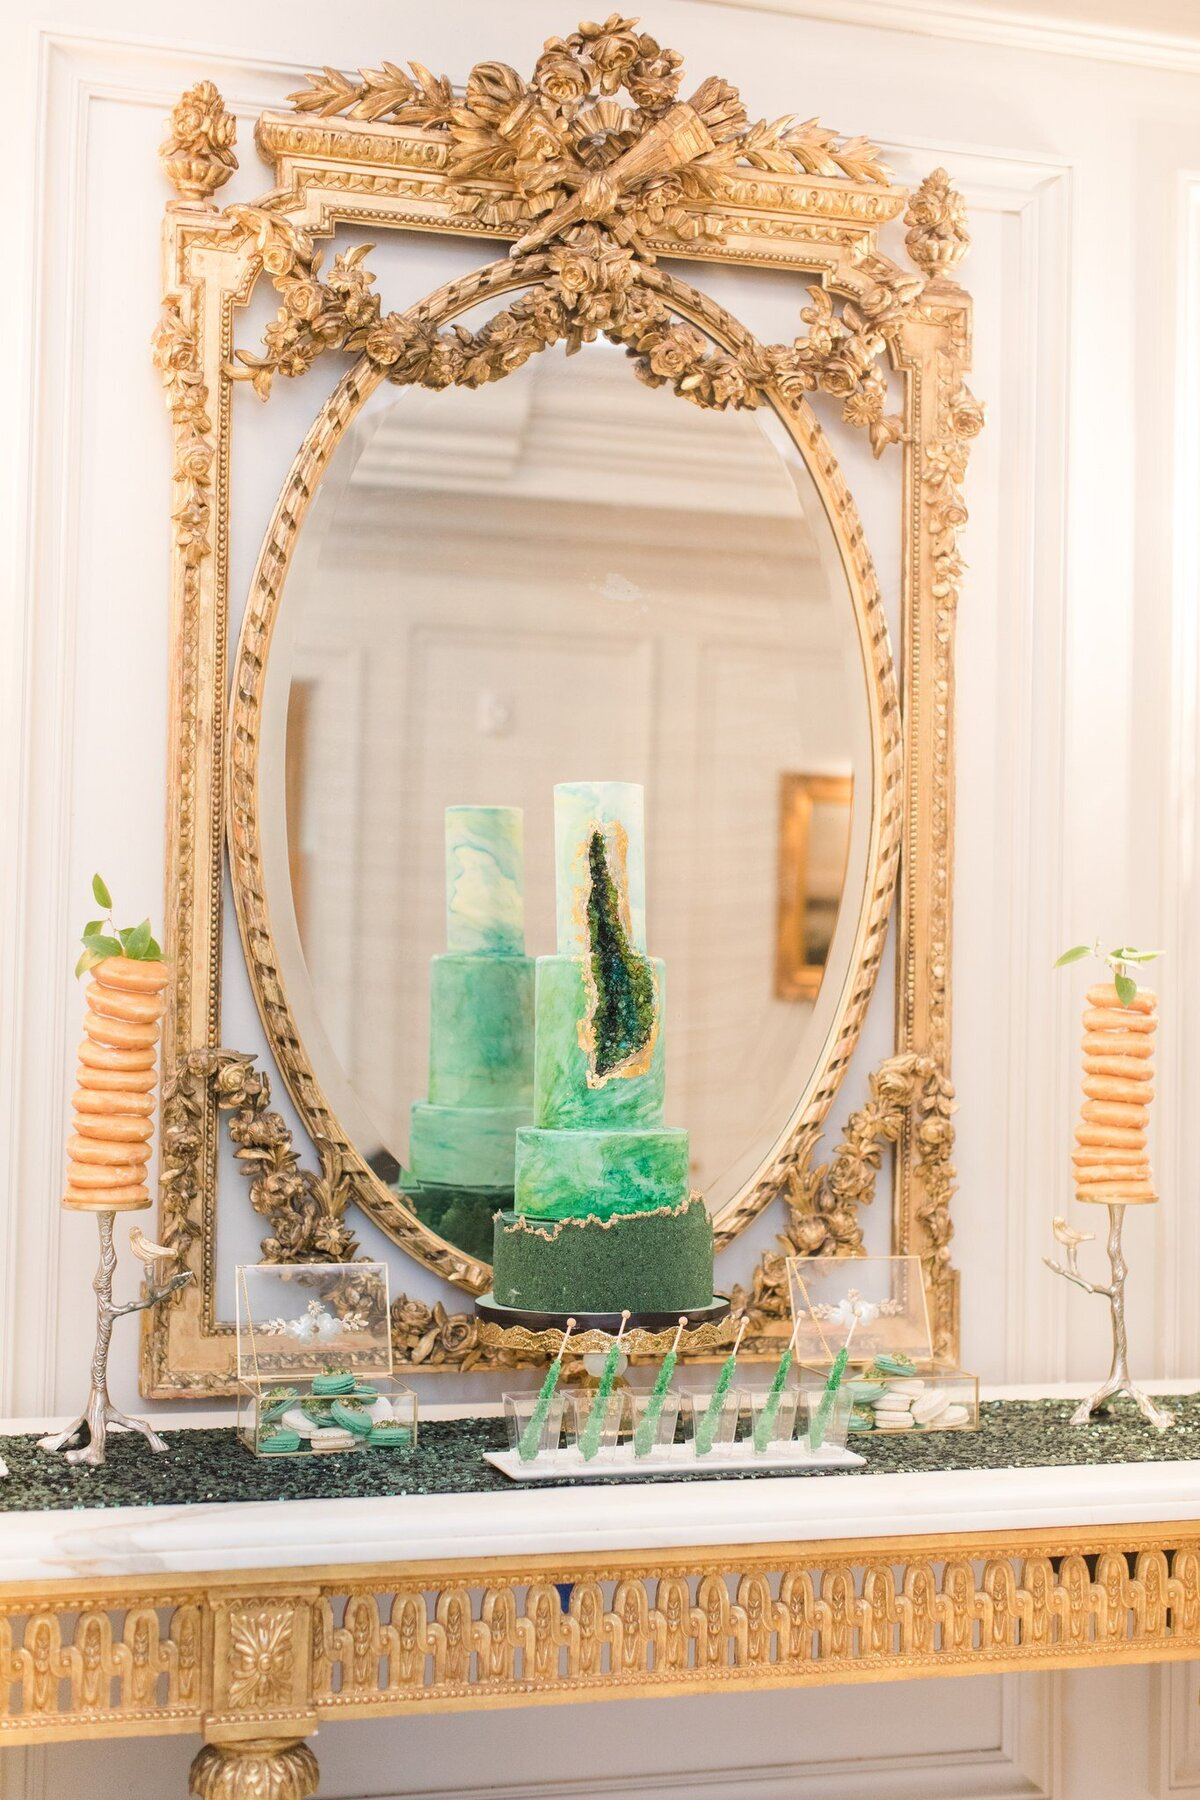 Emerald_Inspired_Wedding_Palette_inside_the_Piano_Room_at_the_Park_Chateau_Estate_and_Gardens_in_East_Brunswick-26